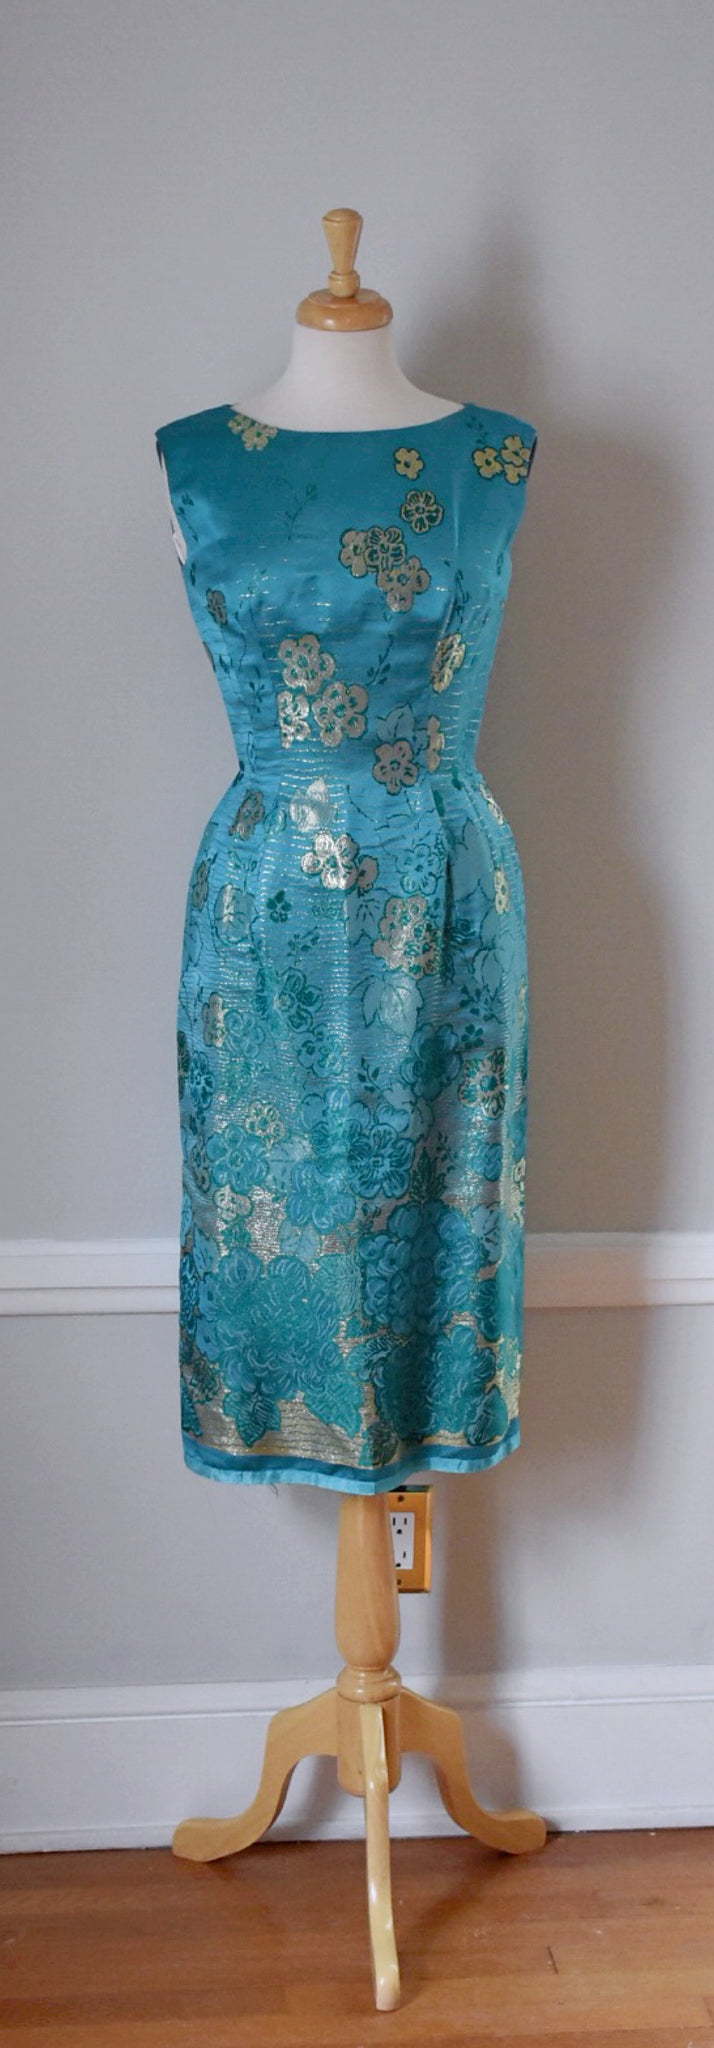 50s teal and gold lame sheath dress